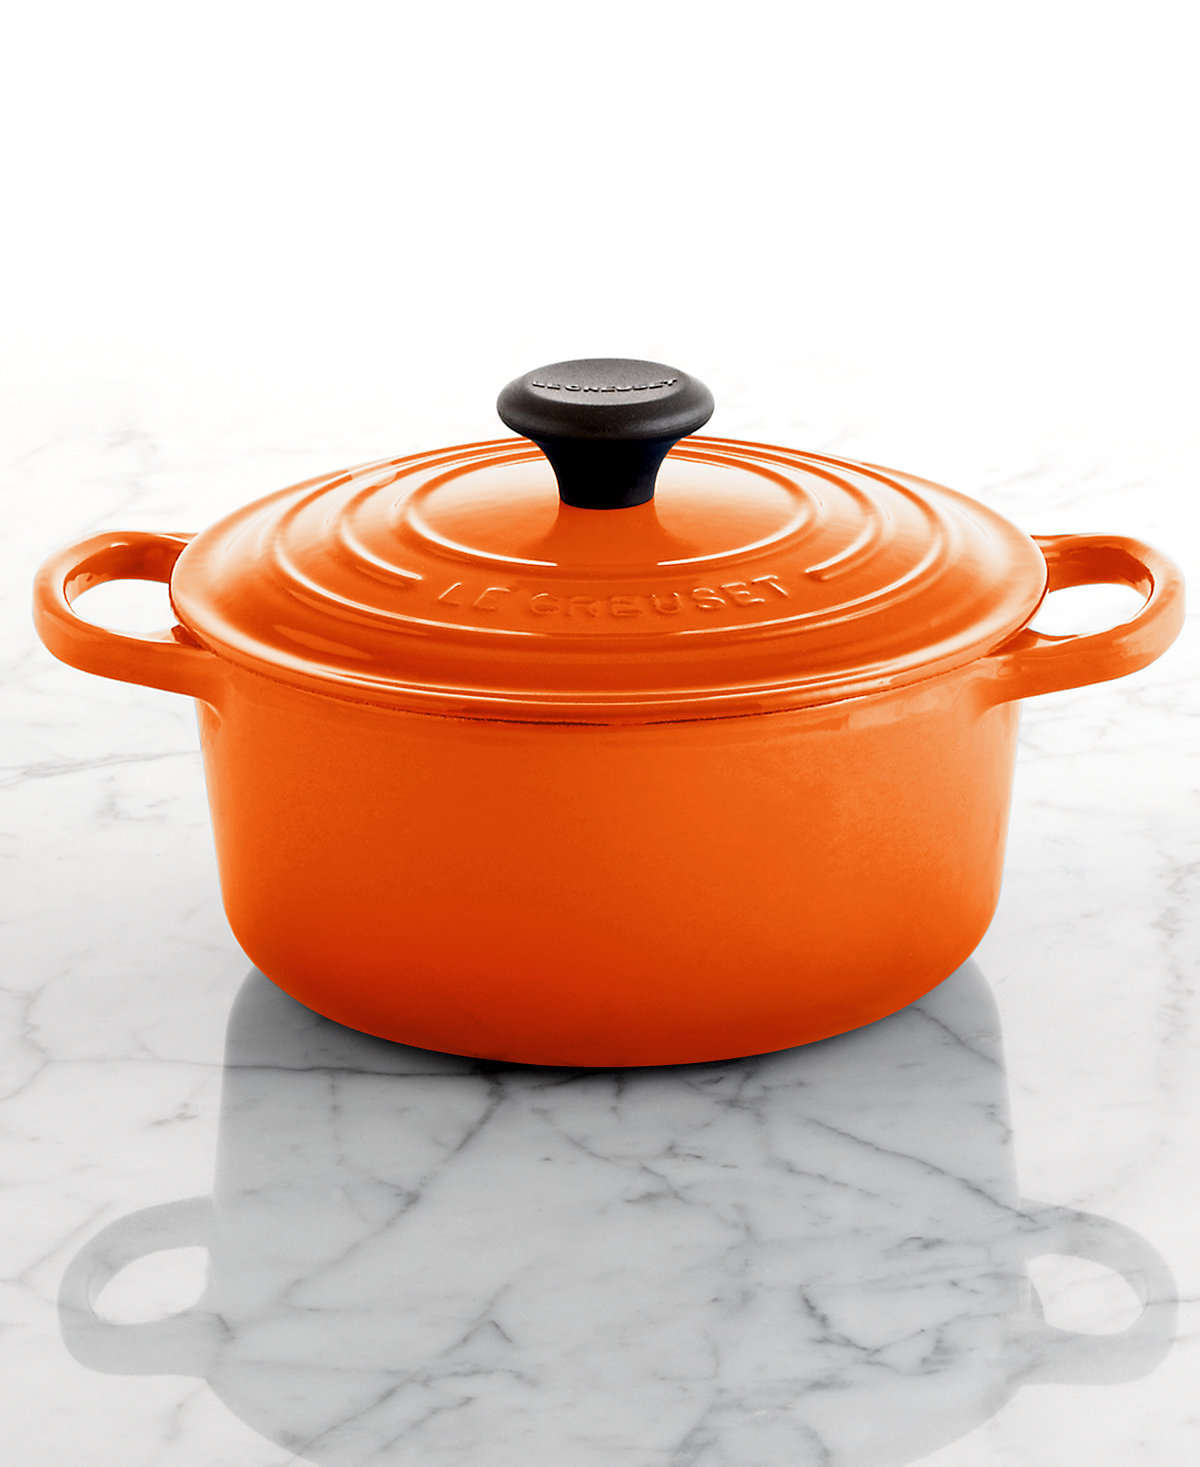 Le Creuset Orange Dutch Oven